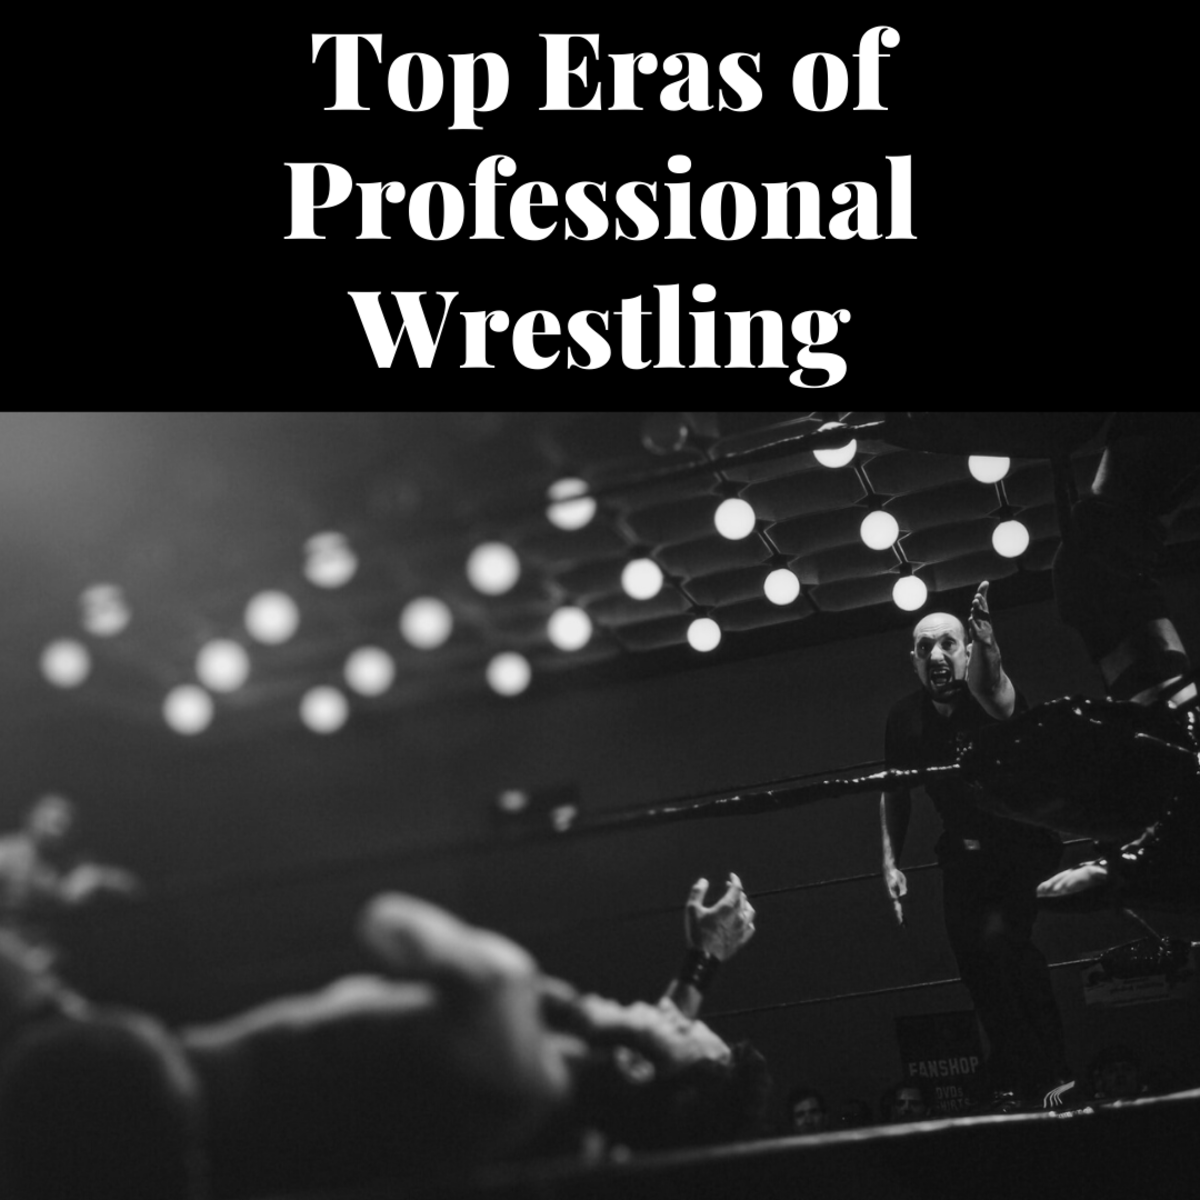 Top 5 Eras of Professional Wrestling